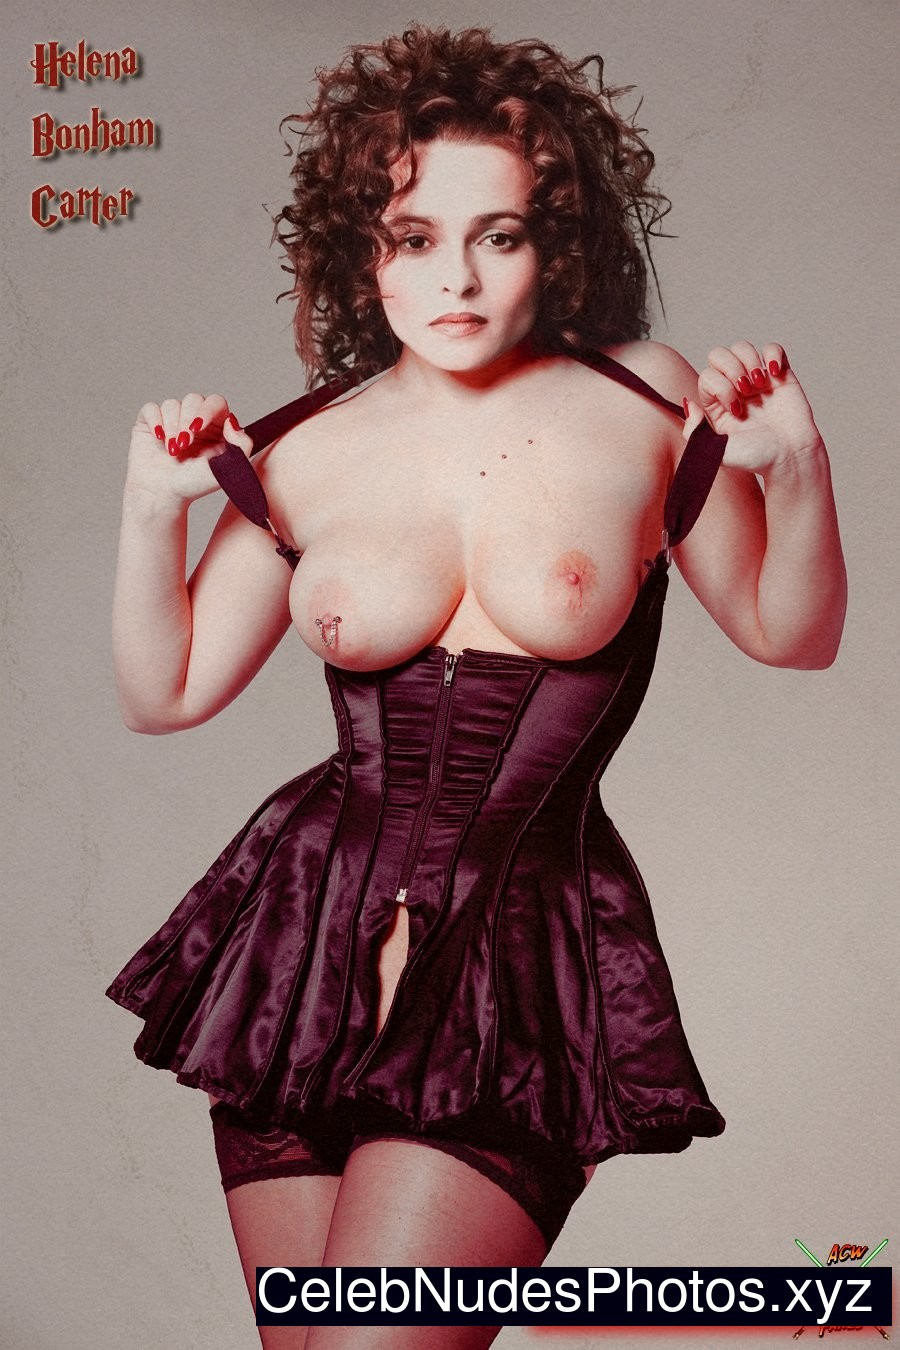 Helena bonham carter nude opinion you